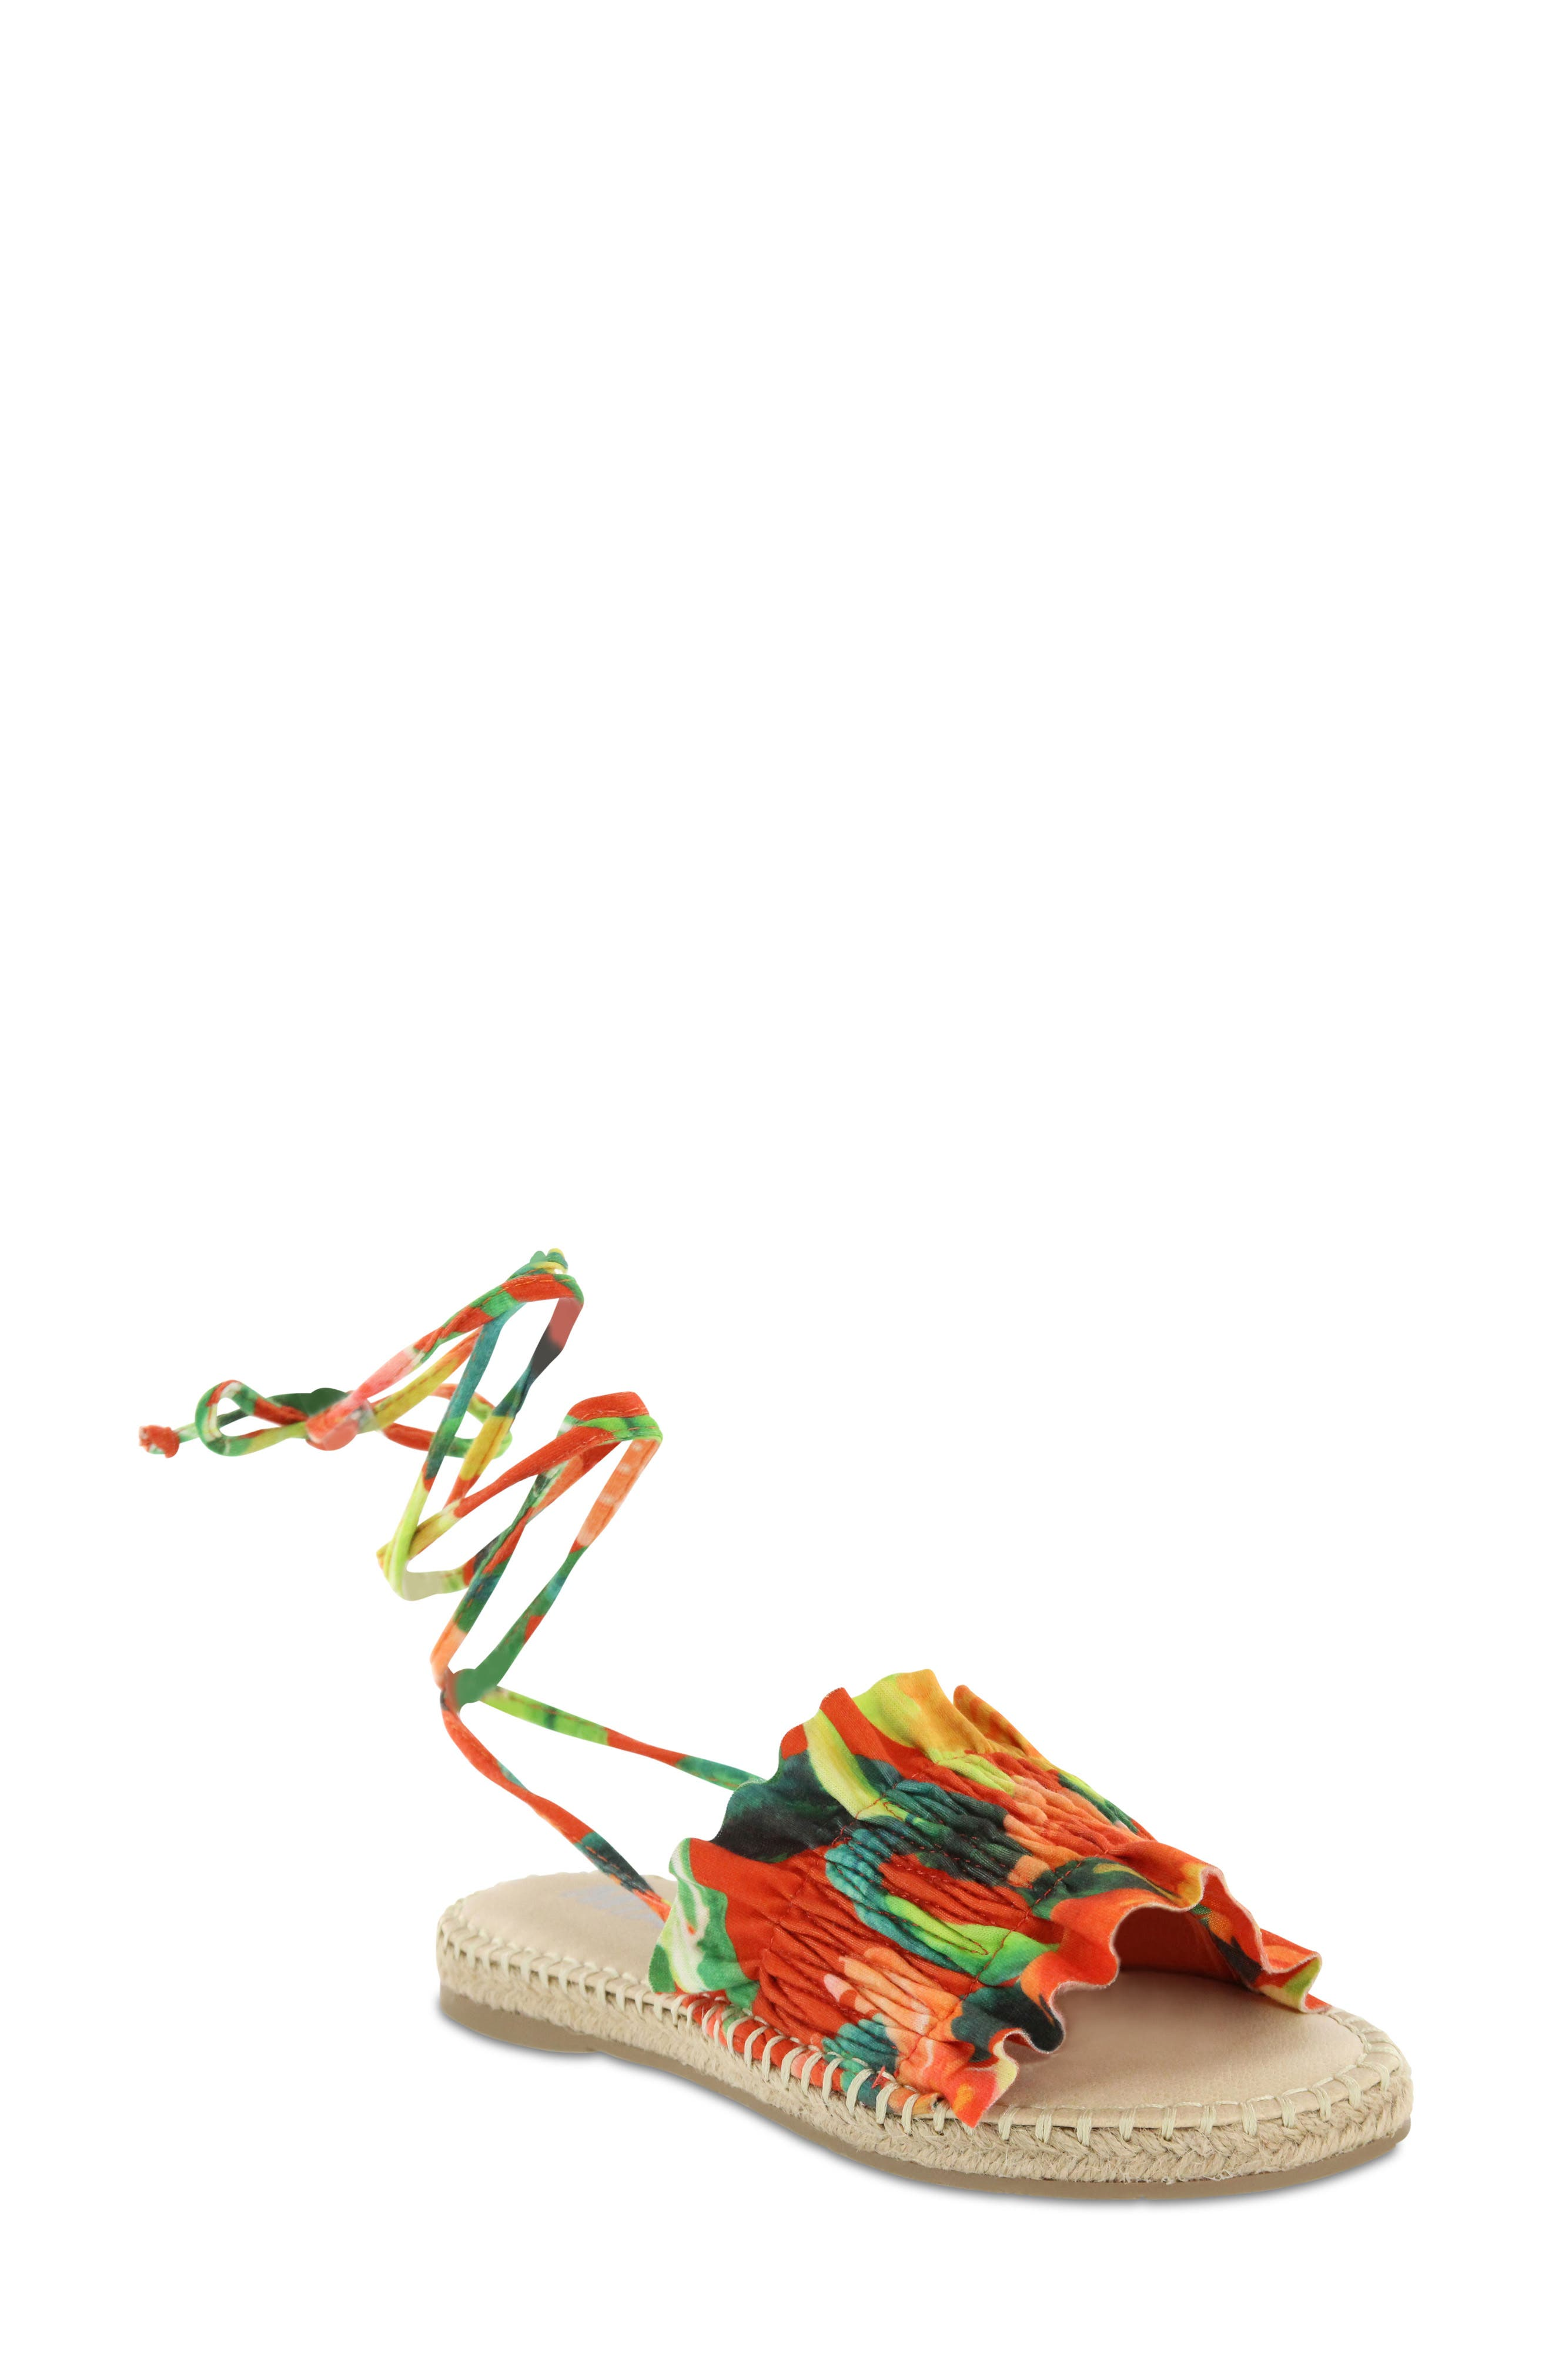 Annalise Sandal,                         Main,                         color, Red Amazon Scrunch Fabric